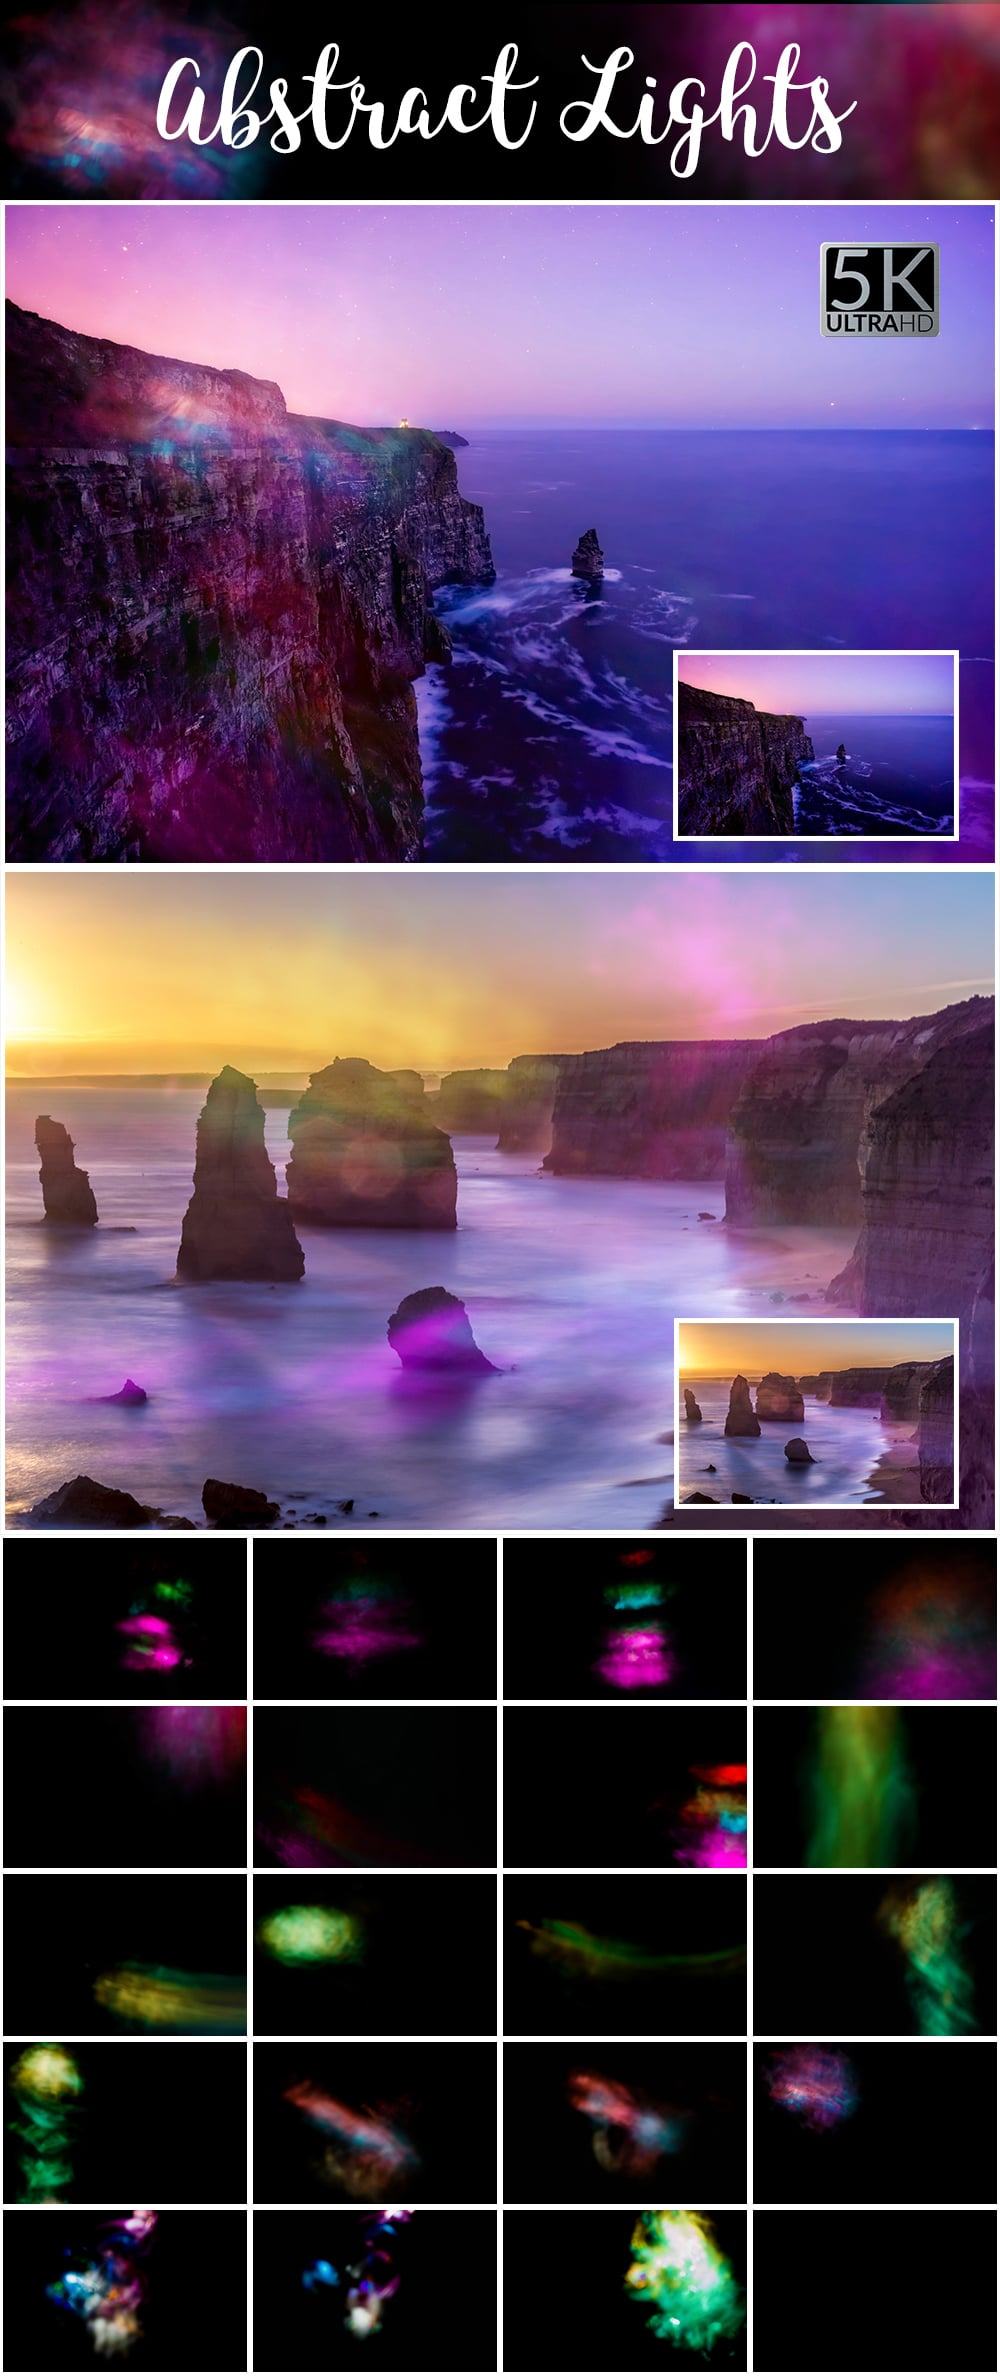 1100 Photoshop Overlays Mega Pack - Extended License - 13 Abstract Lights